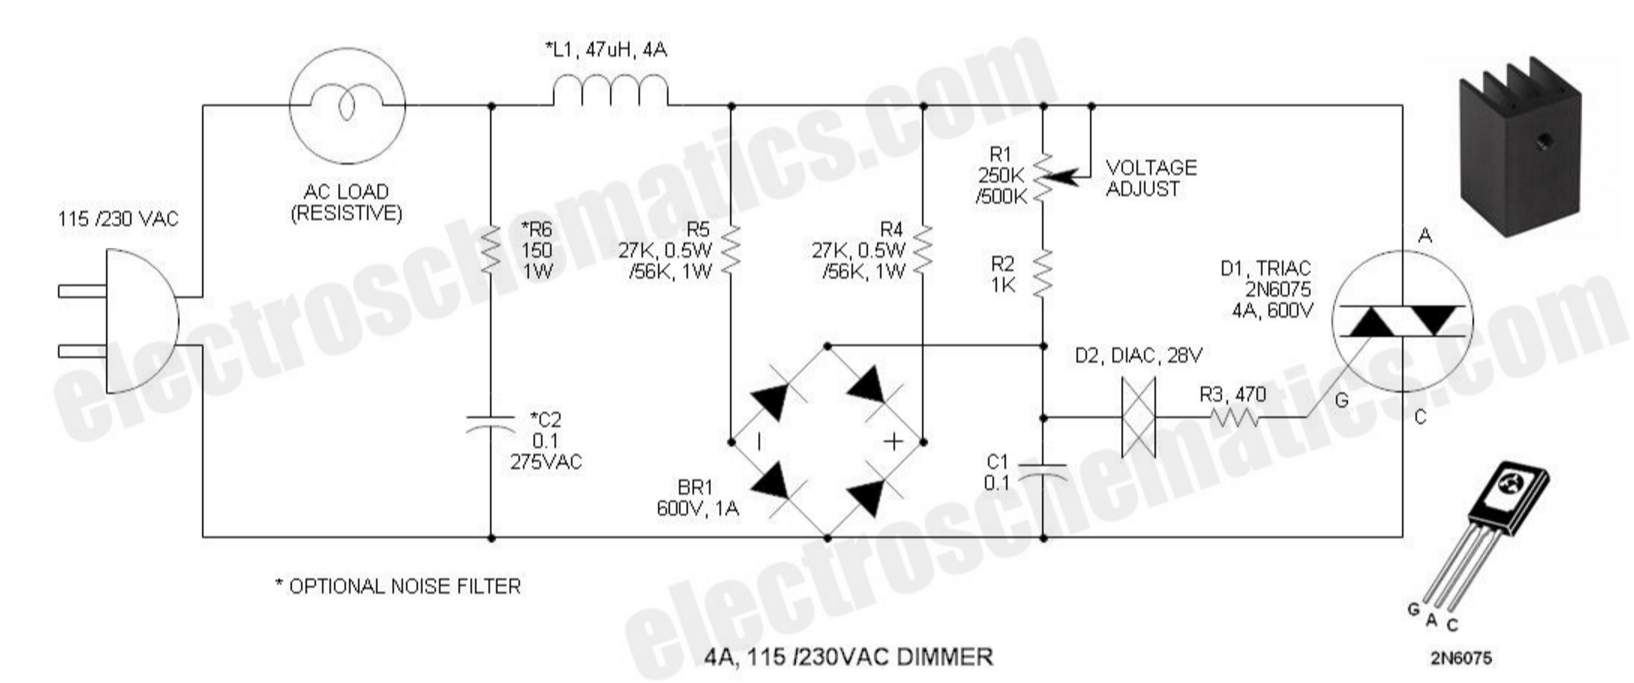 hight resolution of power electronics what is the rectifier s role in this ac dimmer ac dimmer circuit schematic